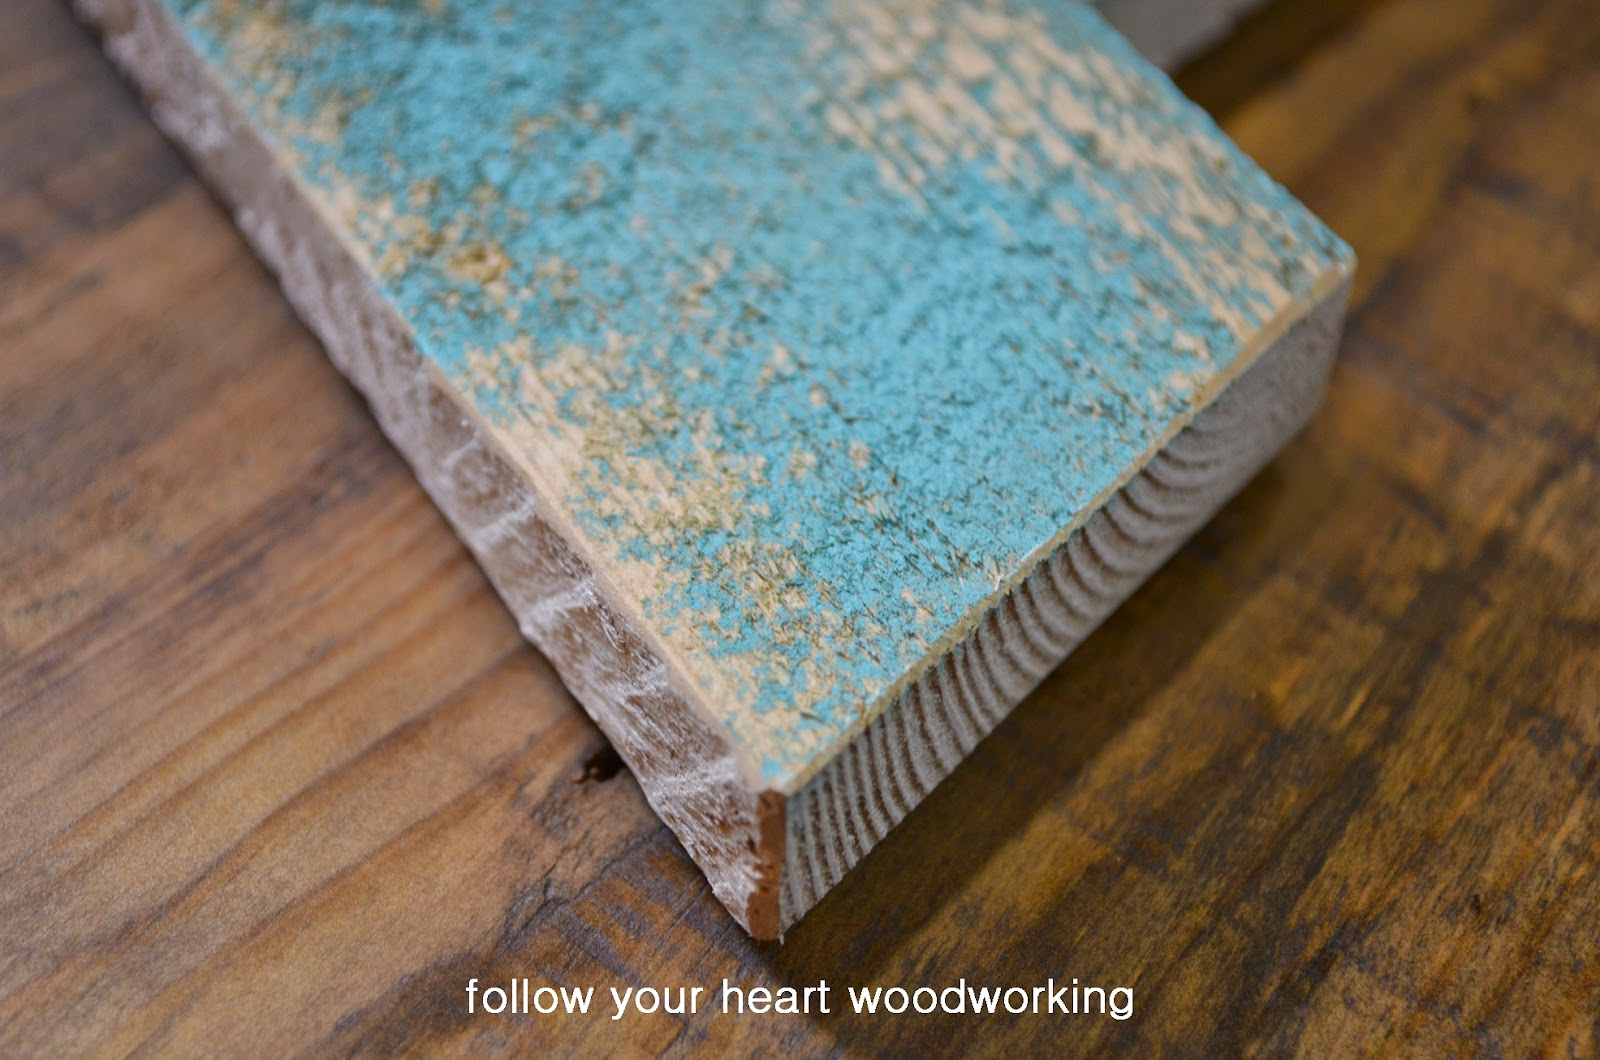 follow your heart woodworking: How to Make \